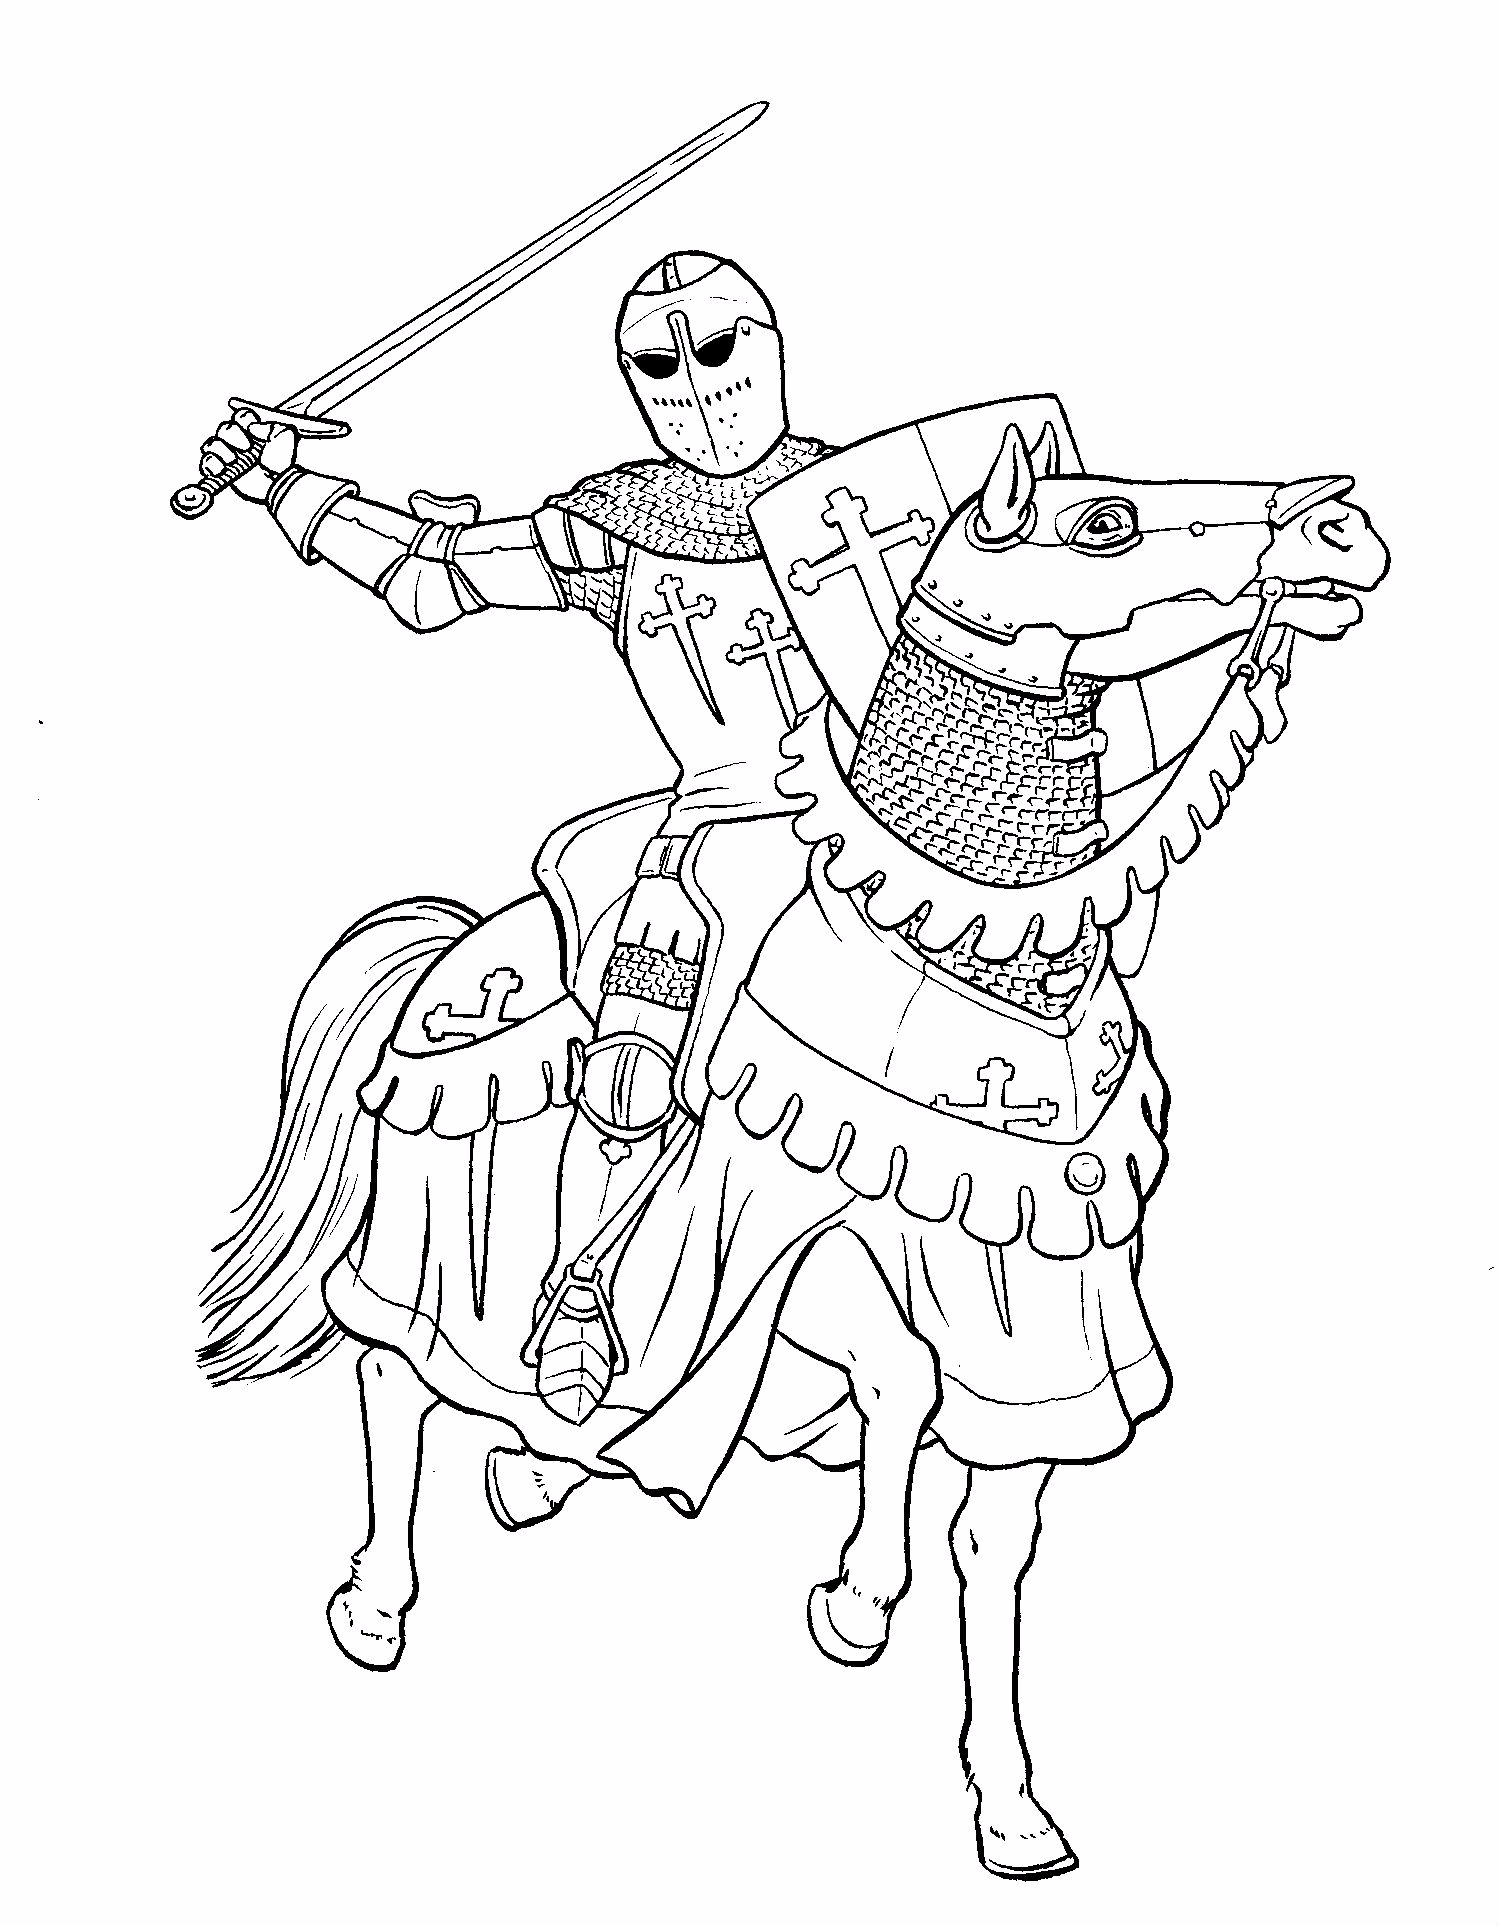 Online Coloring Pages Coloring Pages For Kids : Coloring